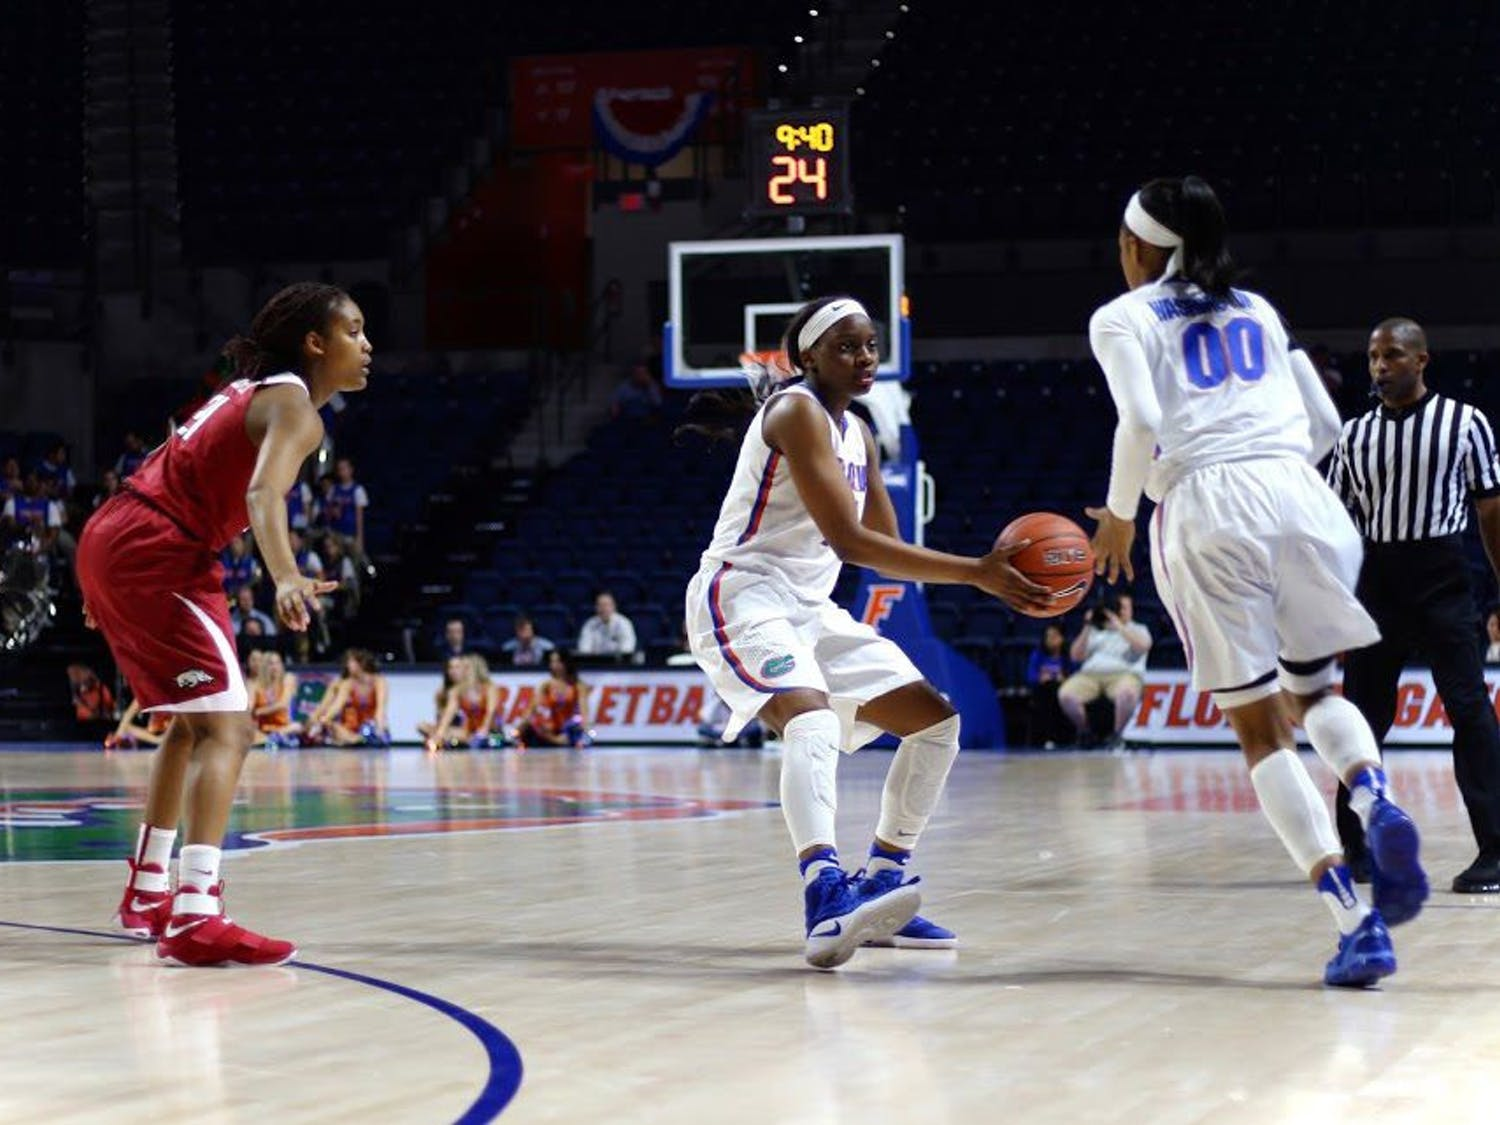 UF guard Dyandria Anderson passes the ball to teammate Delicia Washington during Florida's 57-53 win over Arkansas on Feb. 9, 2017, in the O'Connell Center.